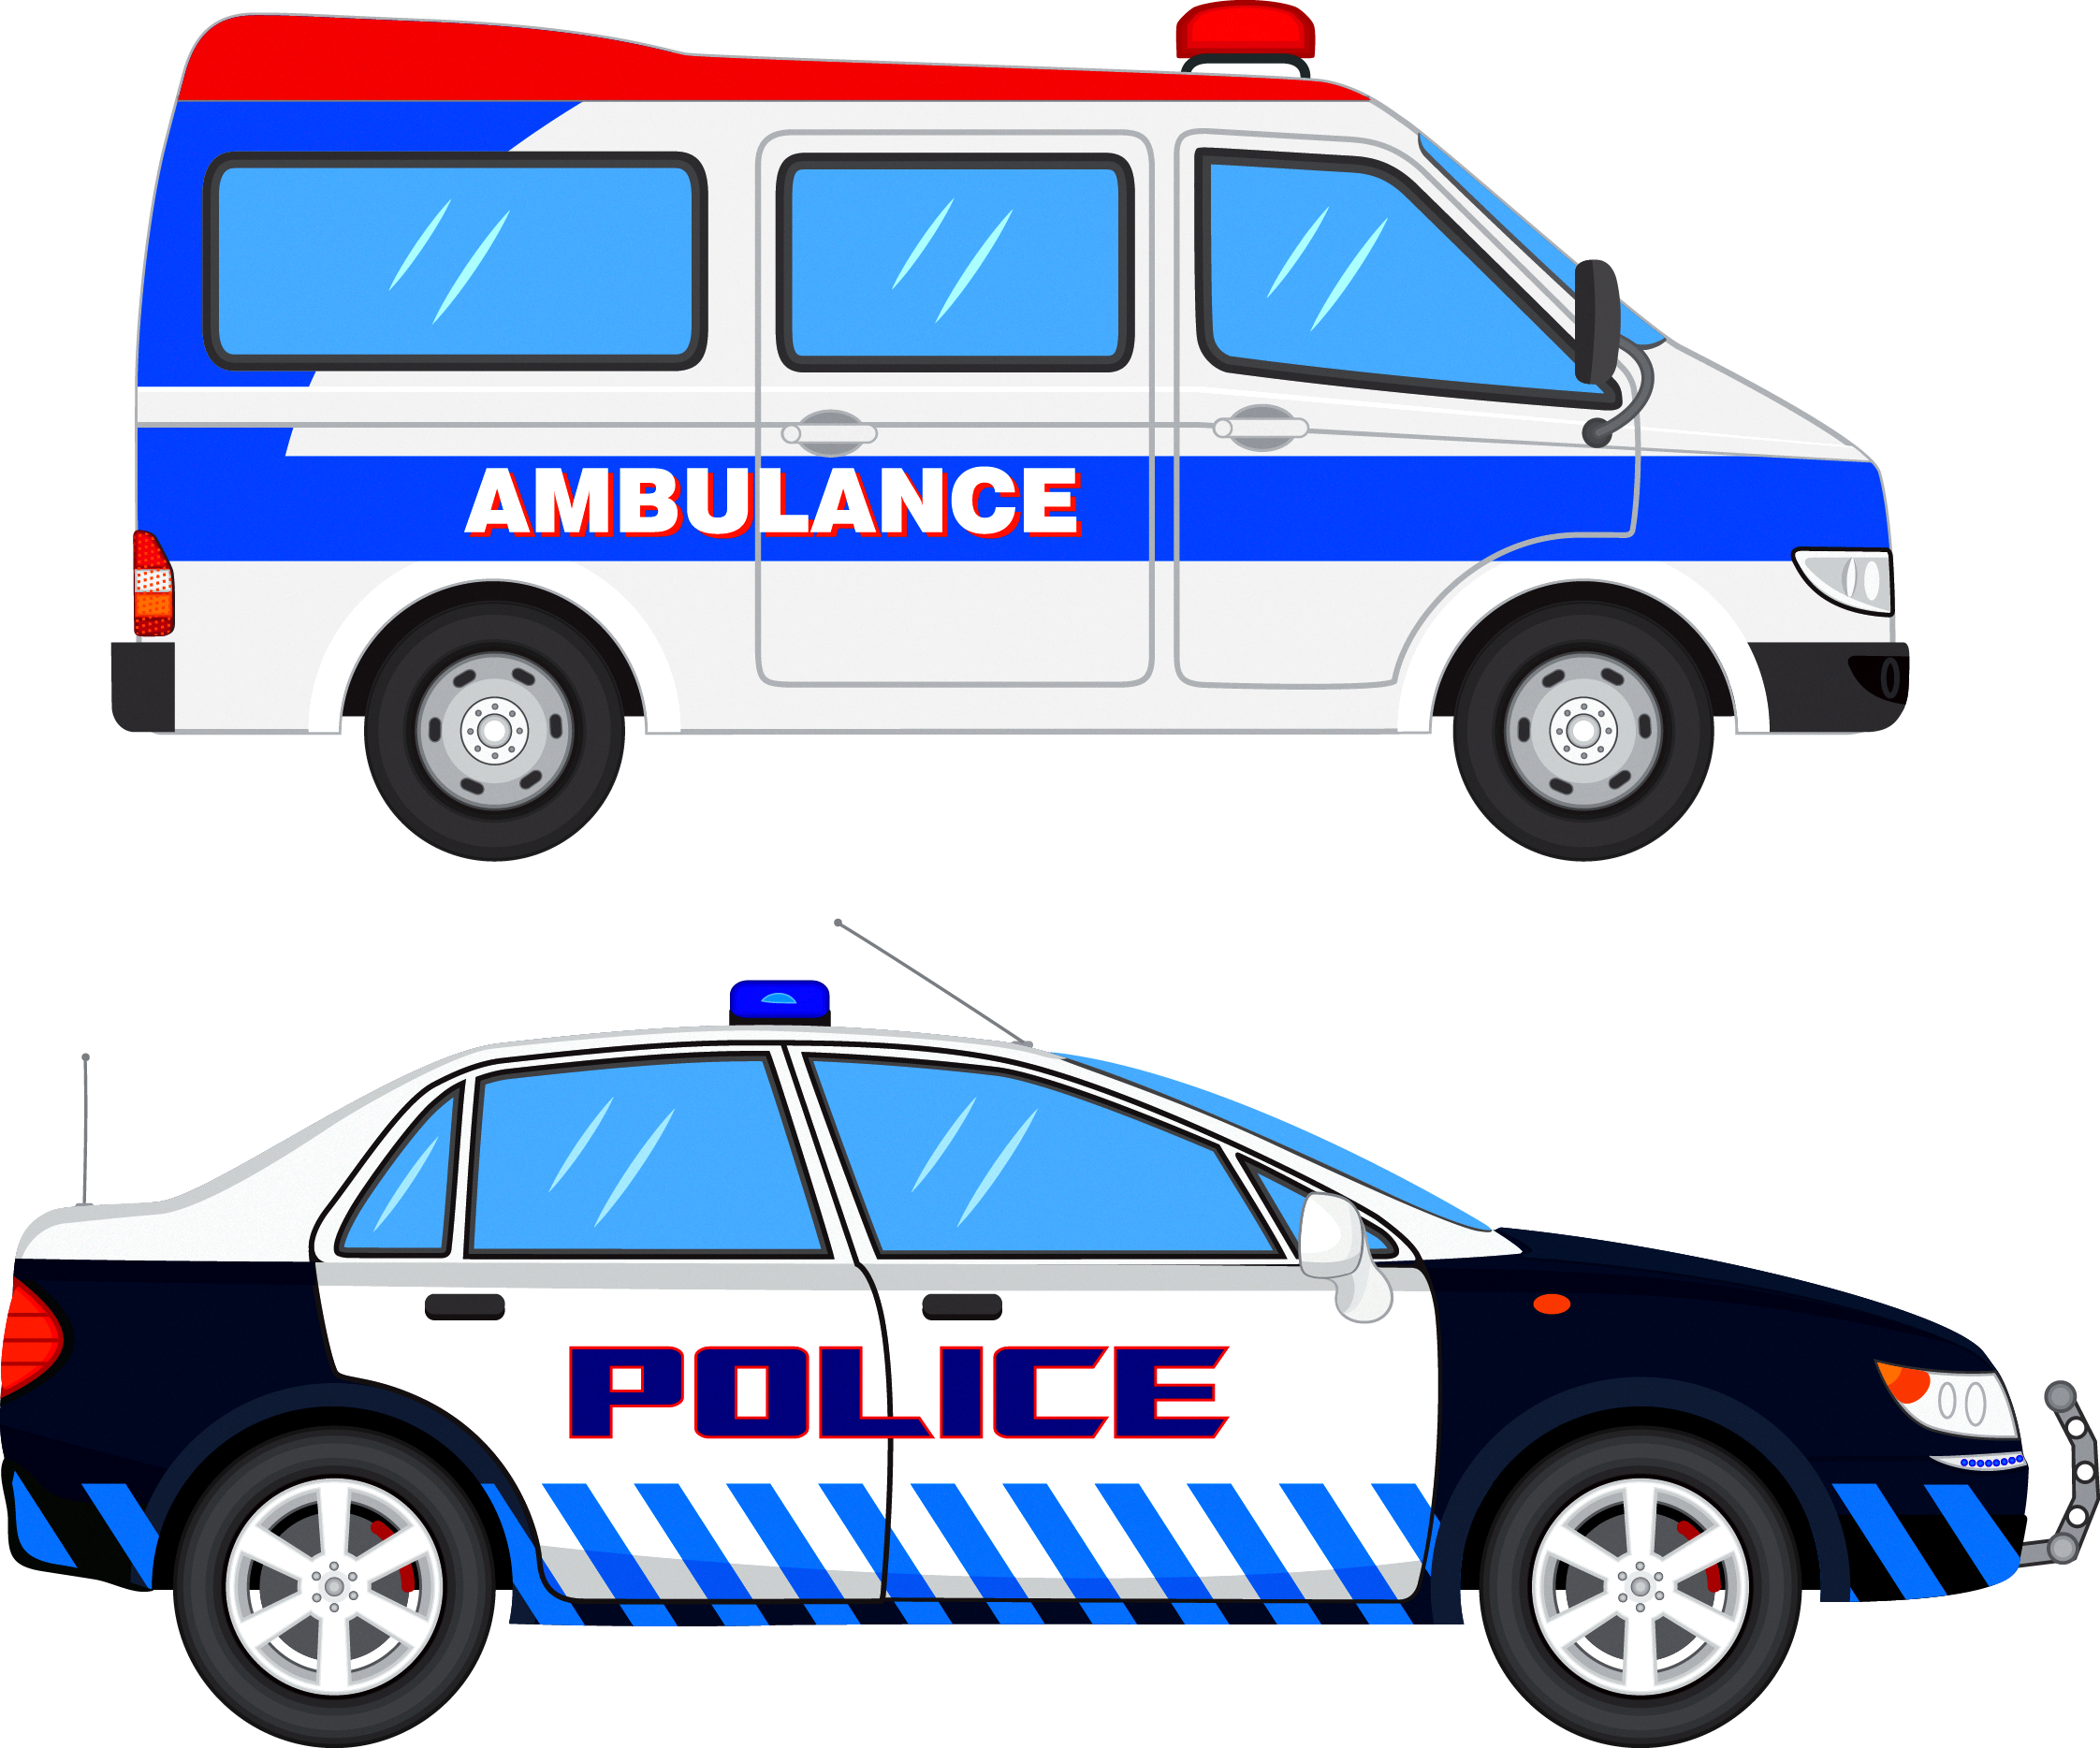 Police clip art ambulance. Clipart coffee car